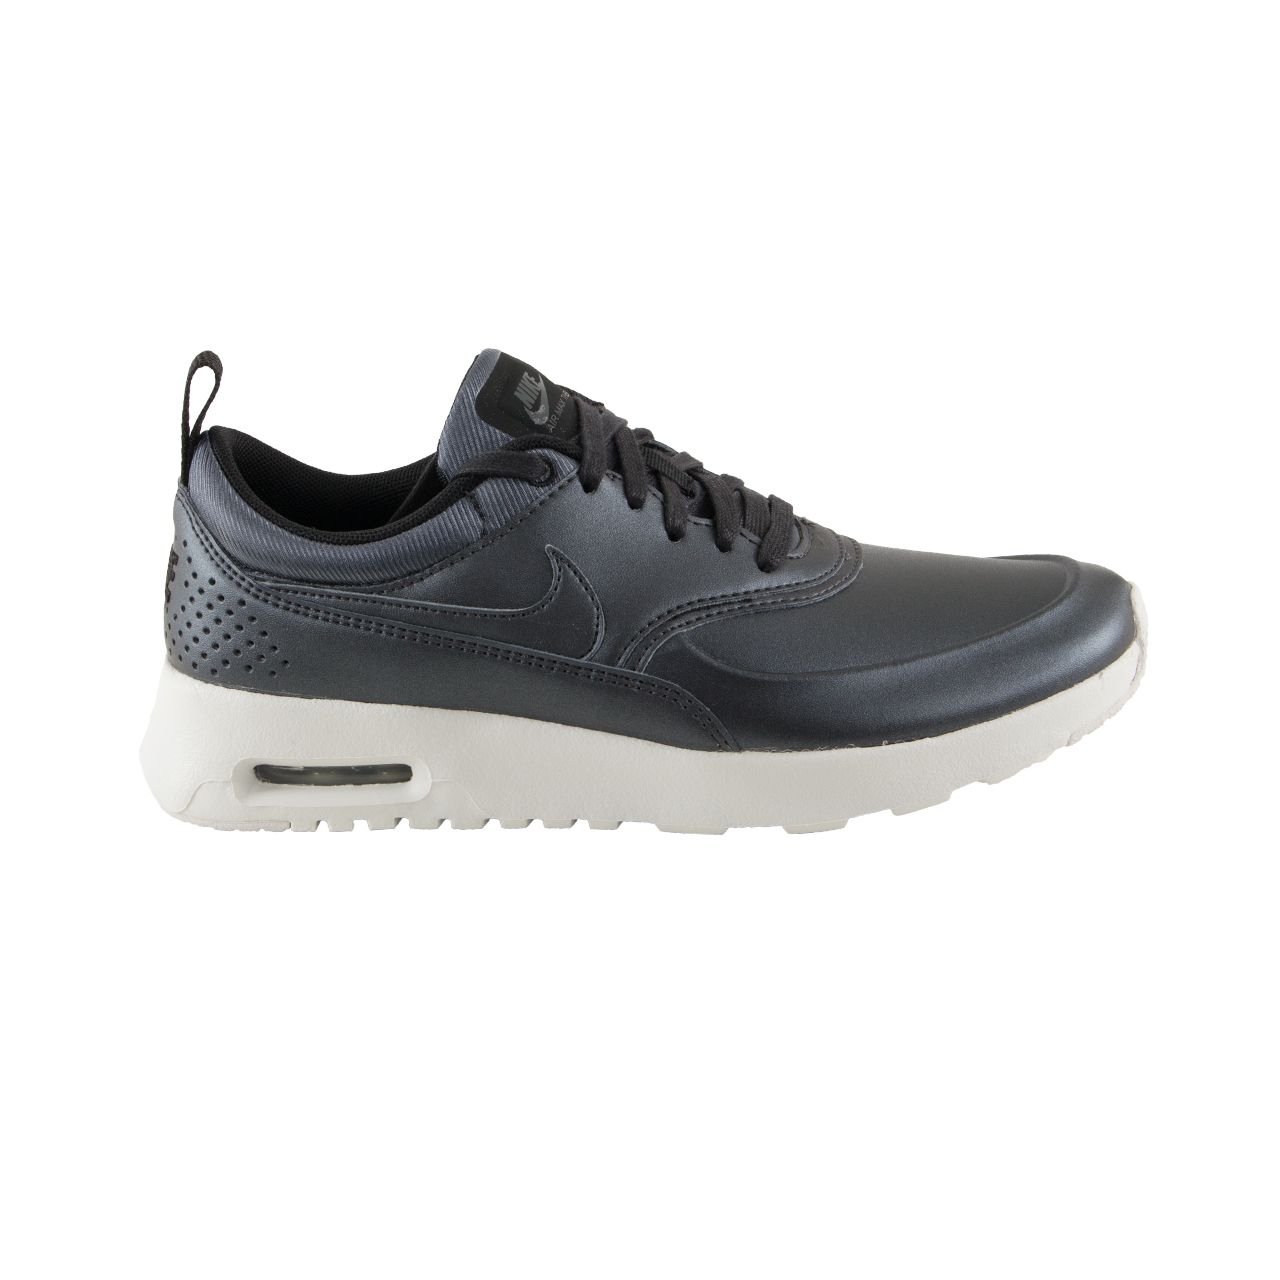 71579b99d7 clearance nike air max thea se sneakers dames nike air max thea se sneakers  dames bestellen